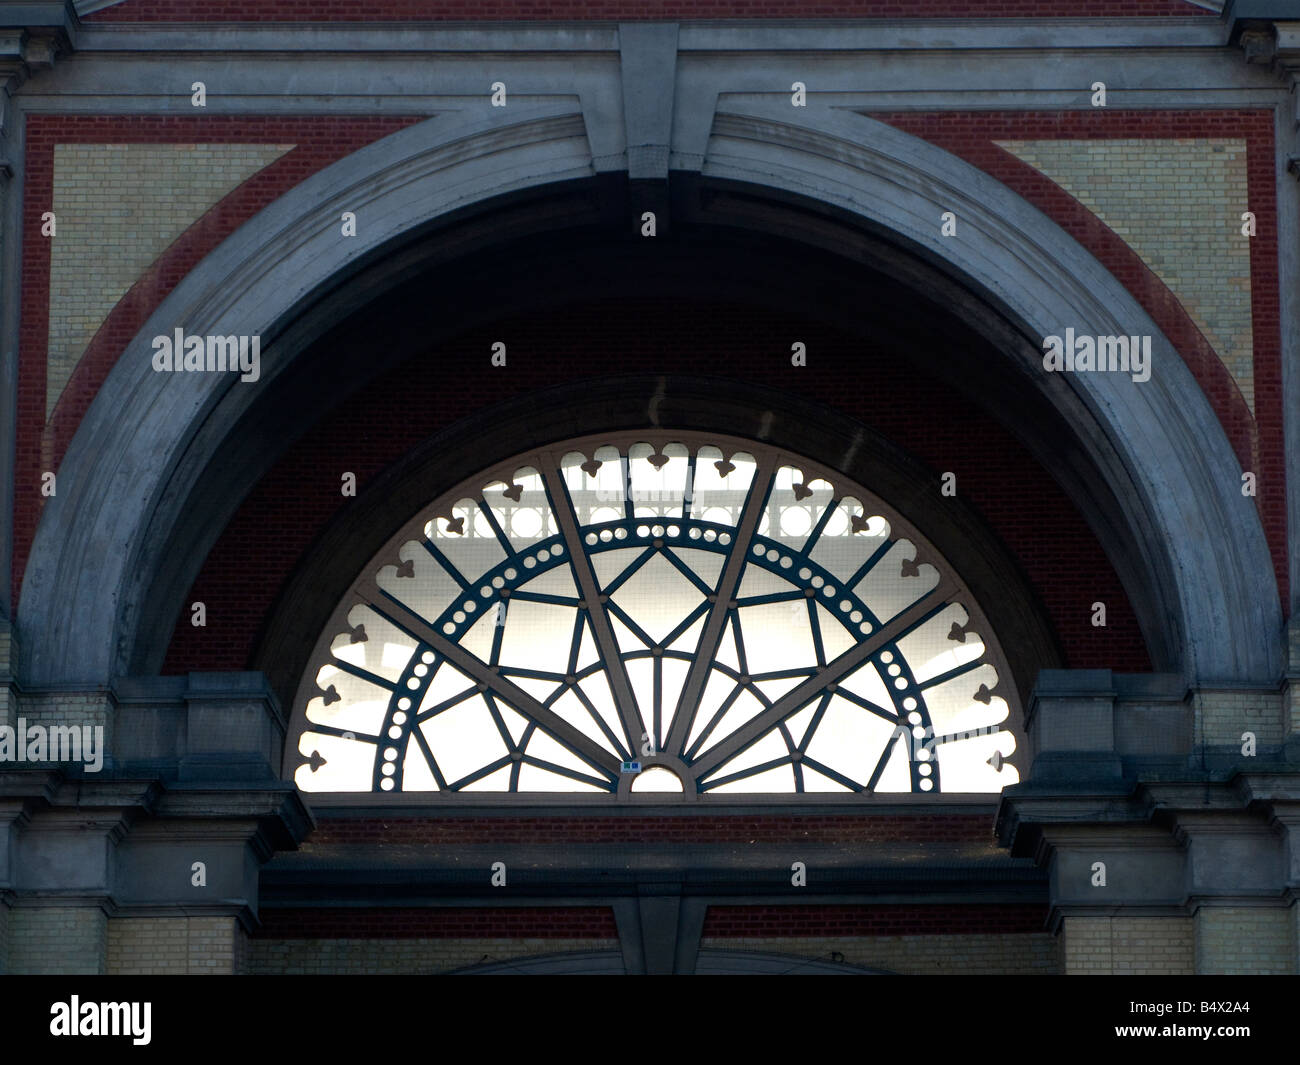 Exterior of Alexandra Palace ice rink - Stock Image